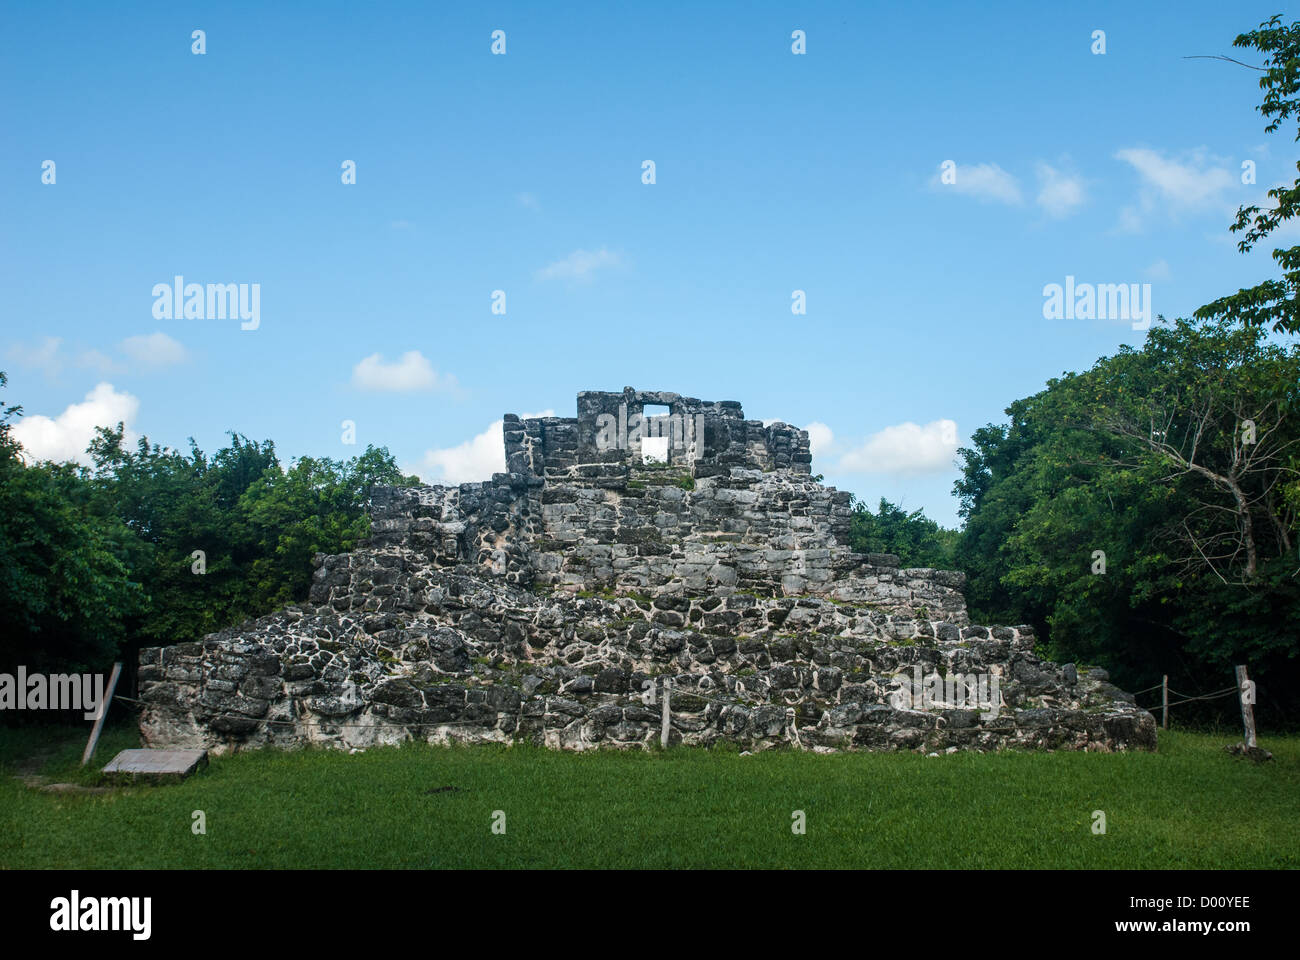 The San Gervasio Mayan Ruins On The Mexican Island Of Cozumel Stock Photo Alamy